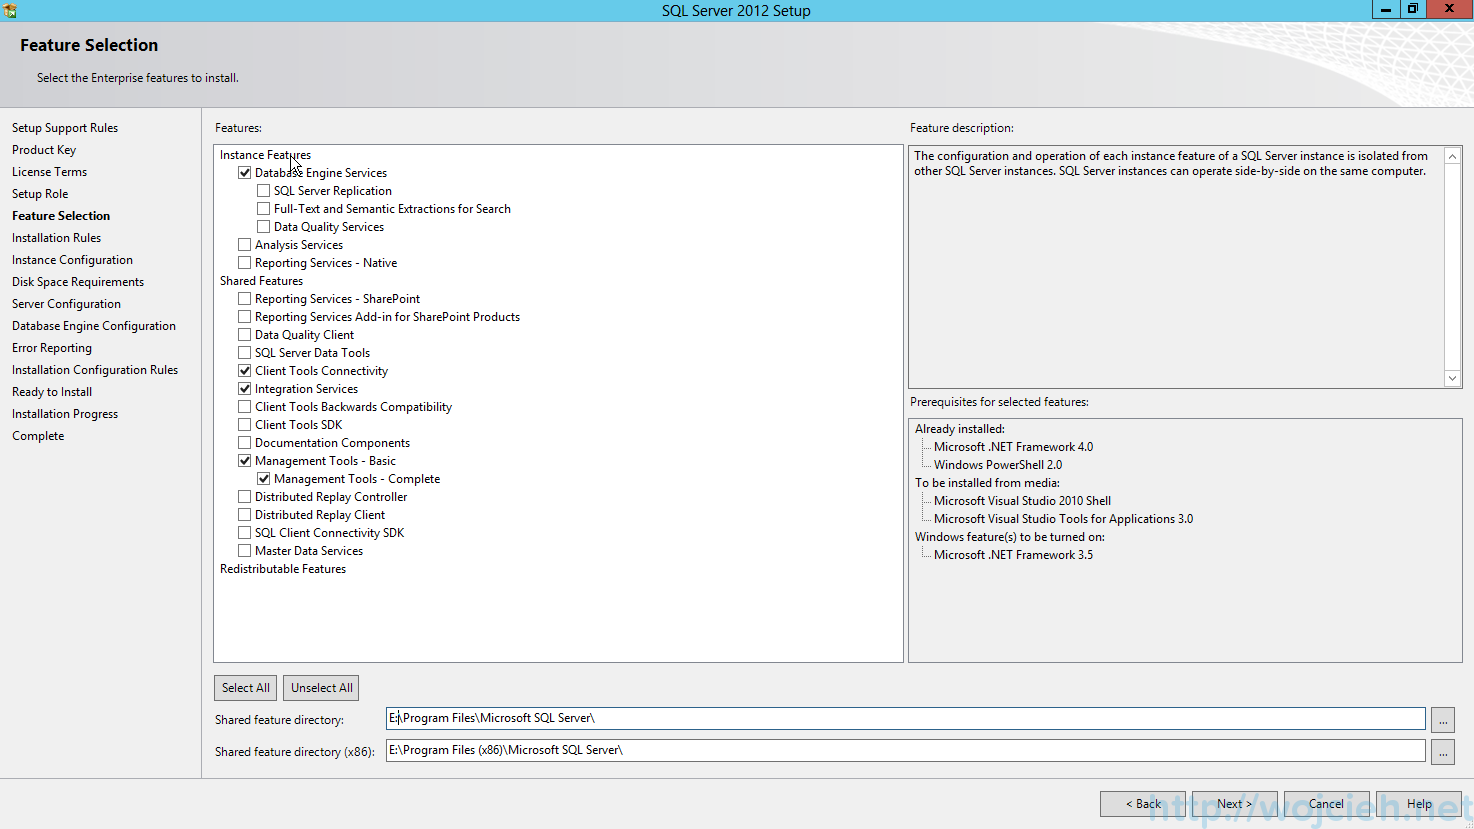 SQL Server 2012 SP1 - Feature Selection